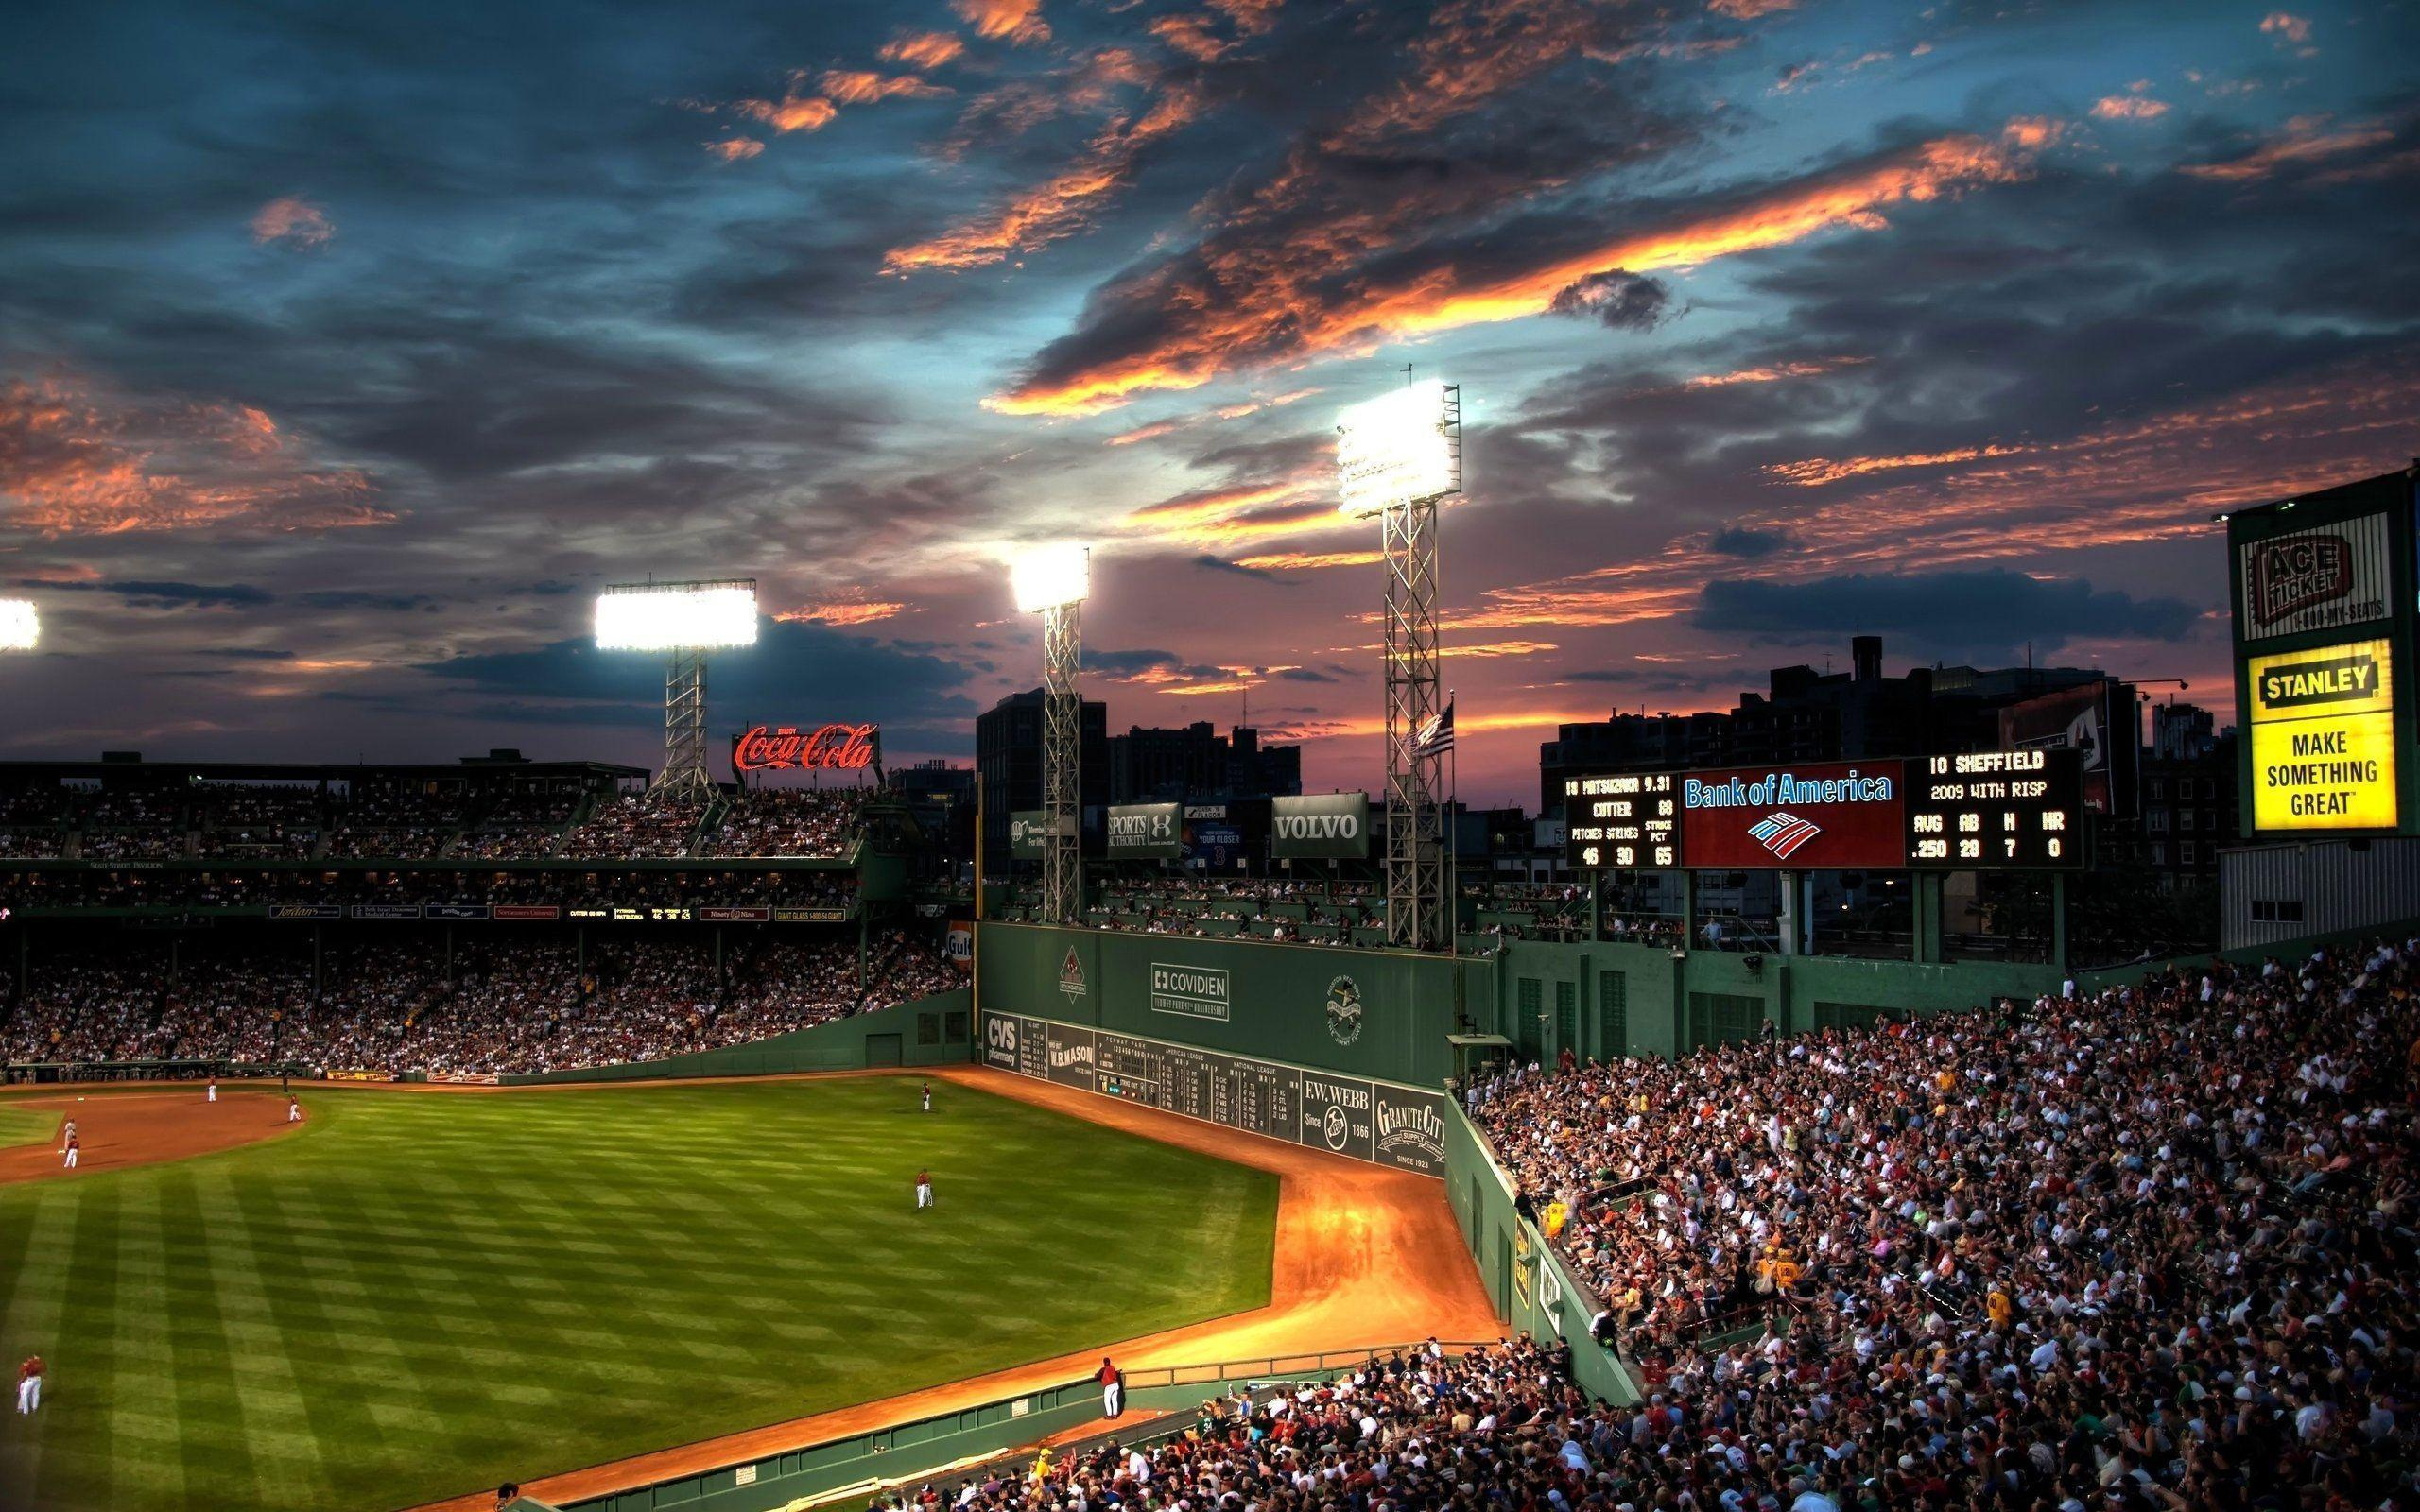 6 Boston Red Sox Wallpapers